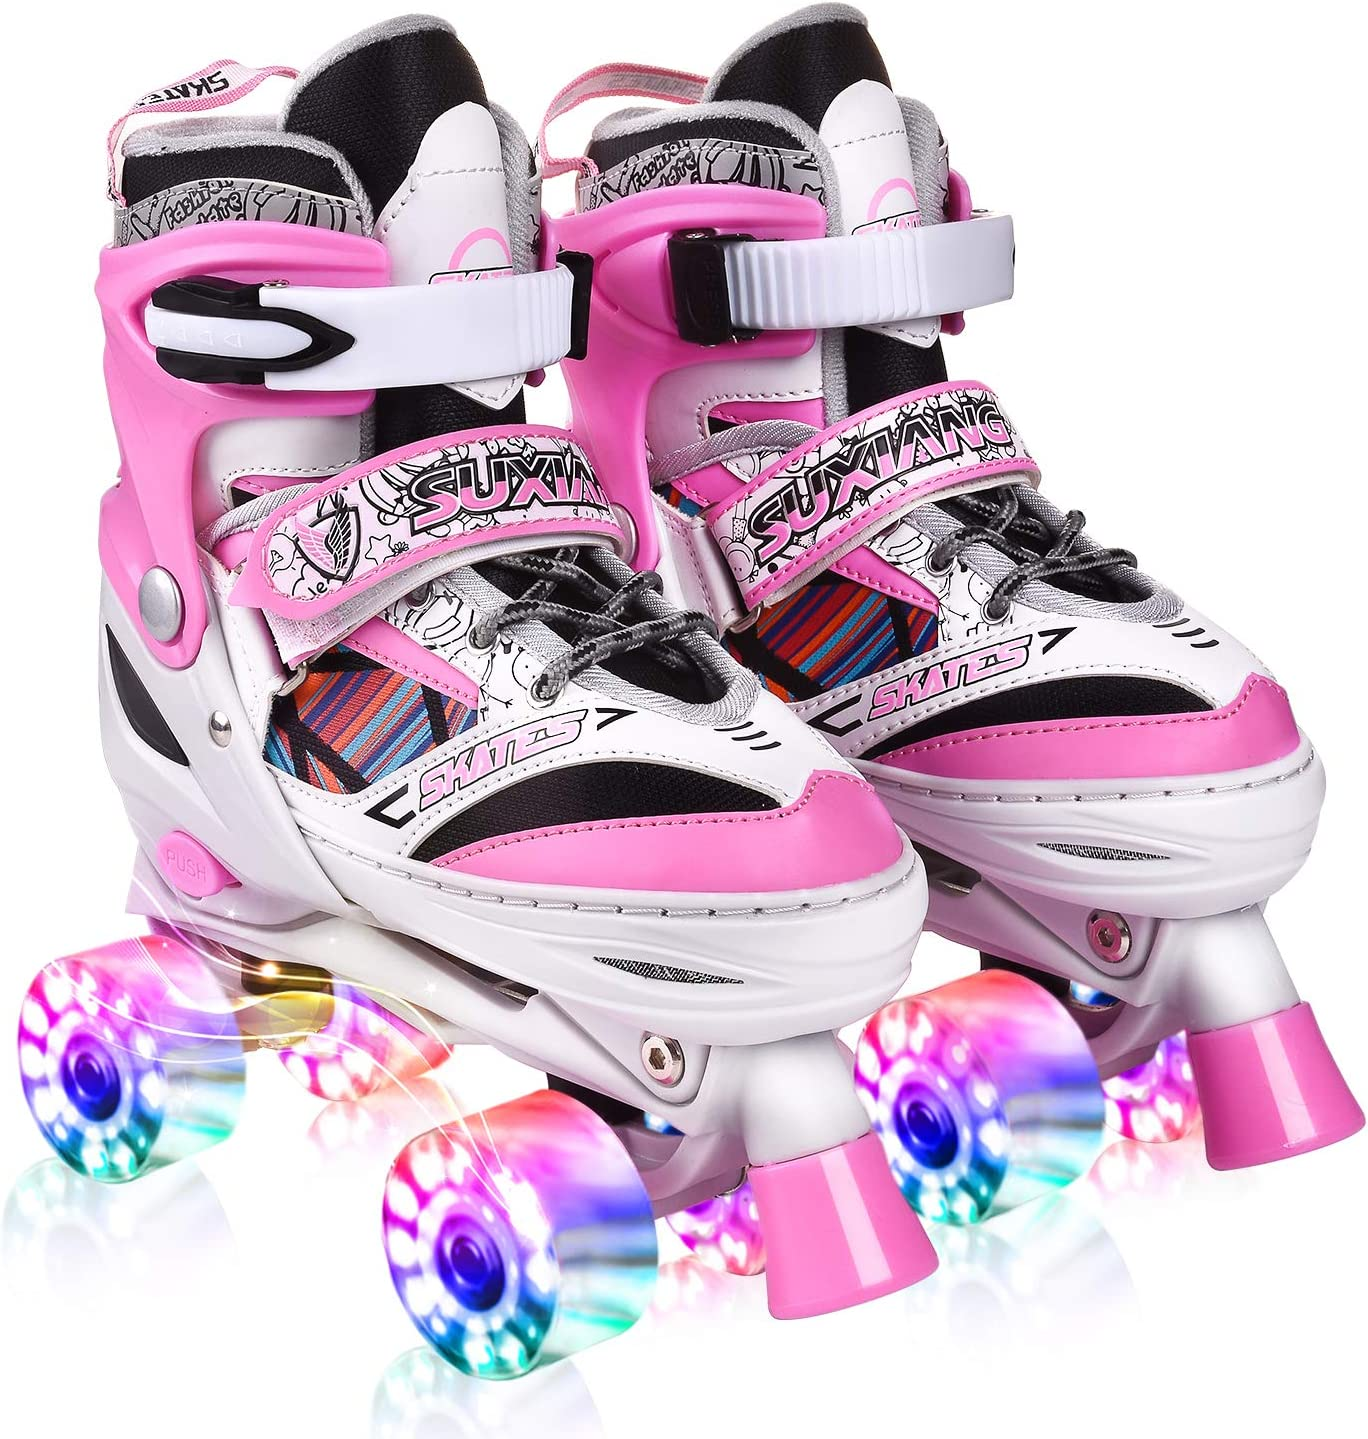 Kuxuan Doodle Design Roller Skates Adjustable for Kids,with All Wheels Light up,Fun Illuminating for Girls and Ladies